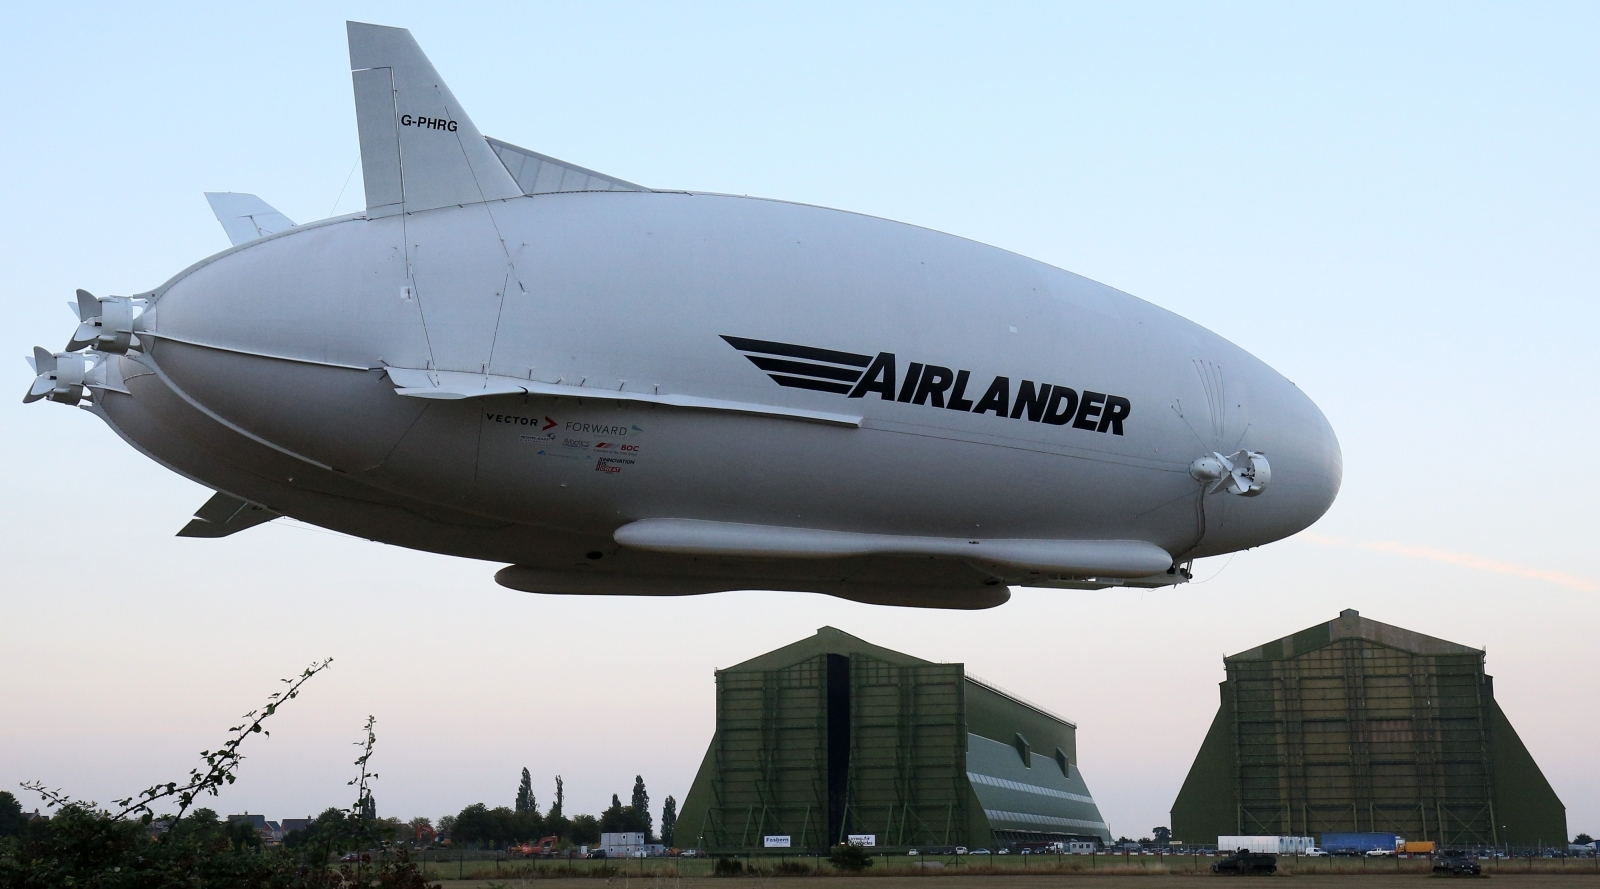 World's largest aircraft breaks free